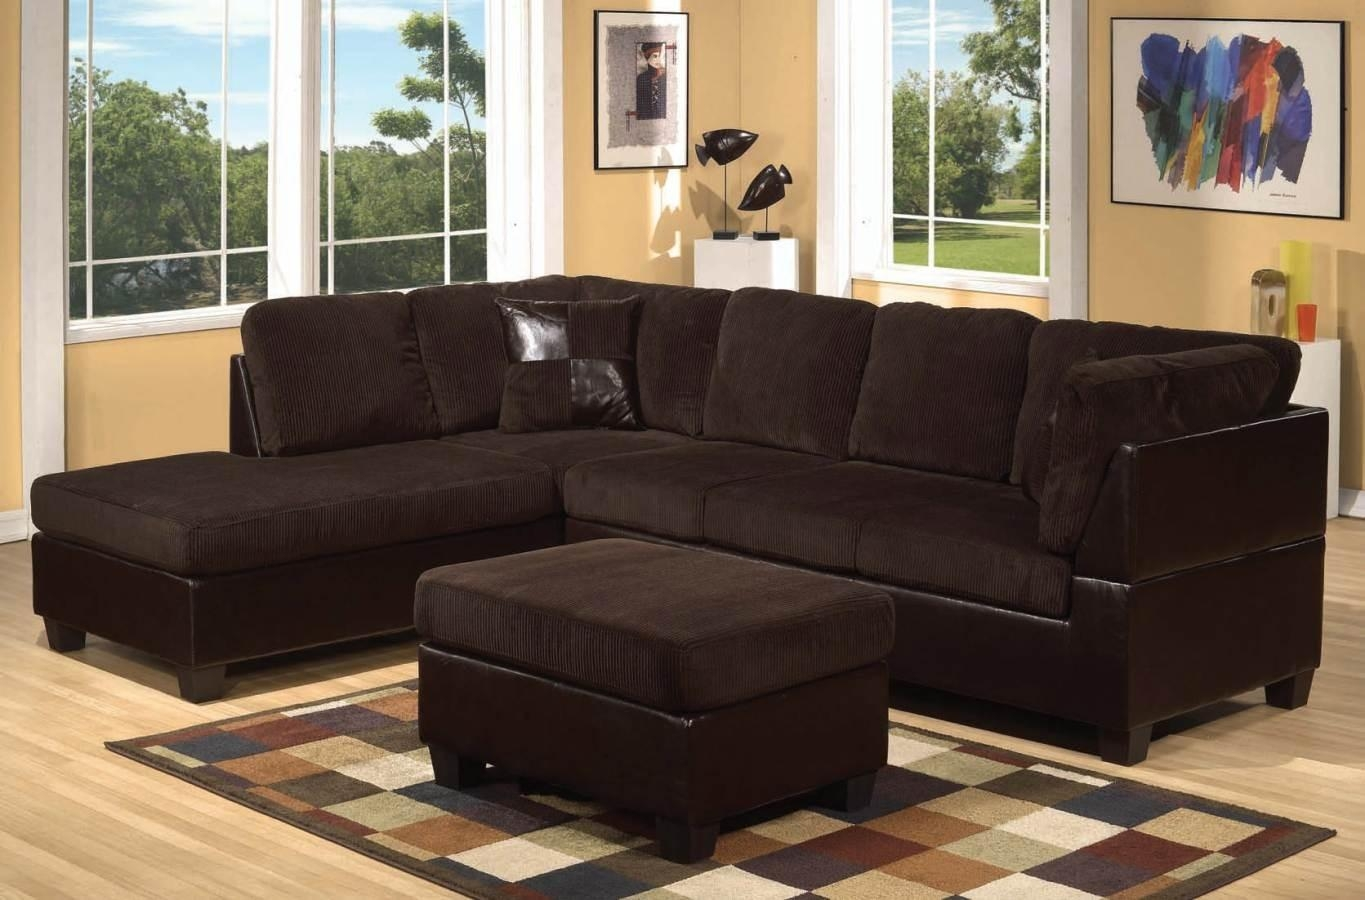 Brown Corduroy Couch : New Lighting – Trend Corduroy Couch Style Inside Brown Corduroy Sofas (Image 4 of 20)